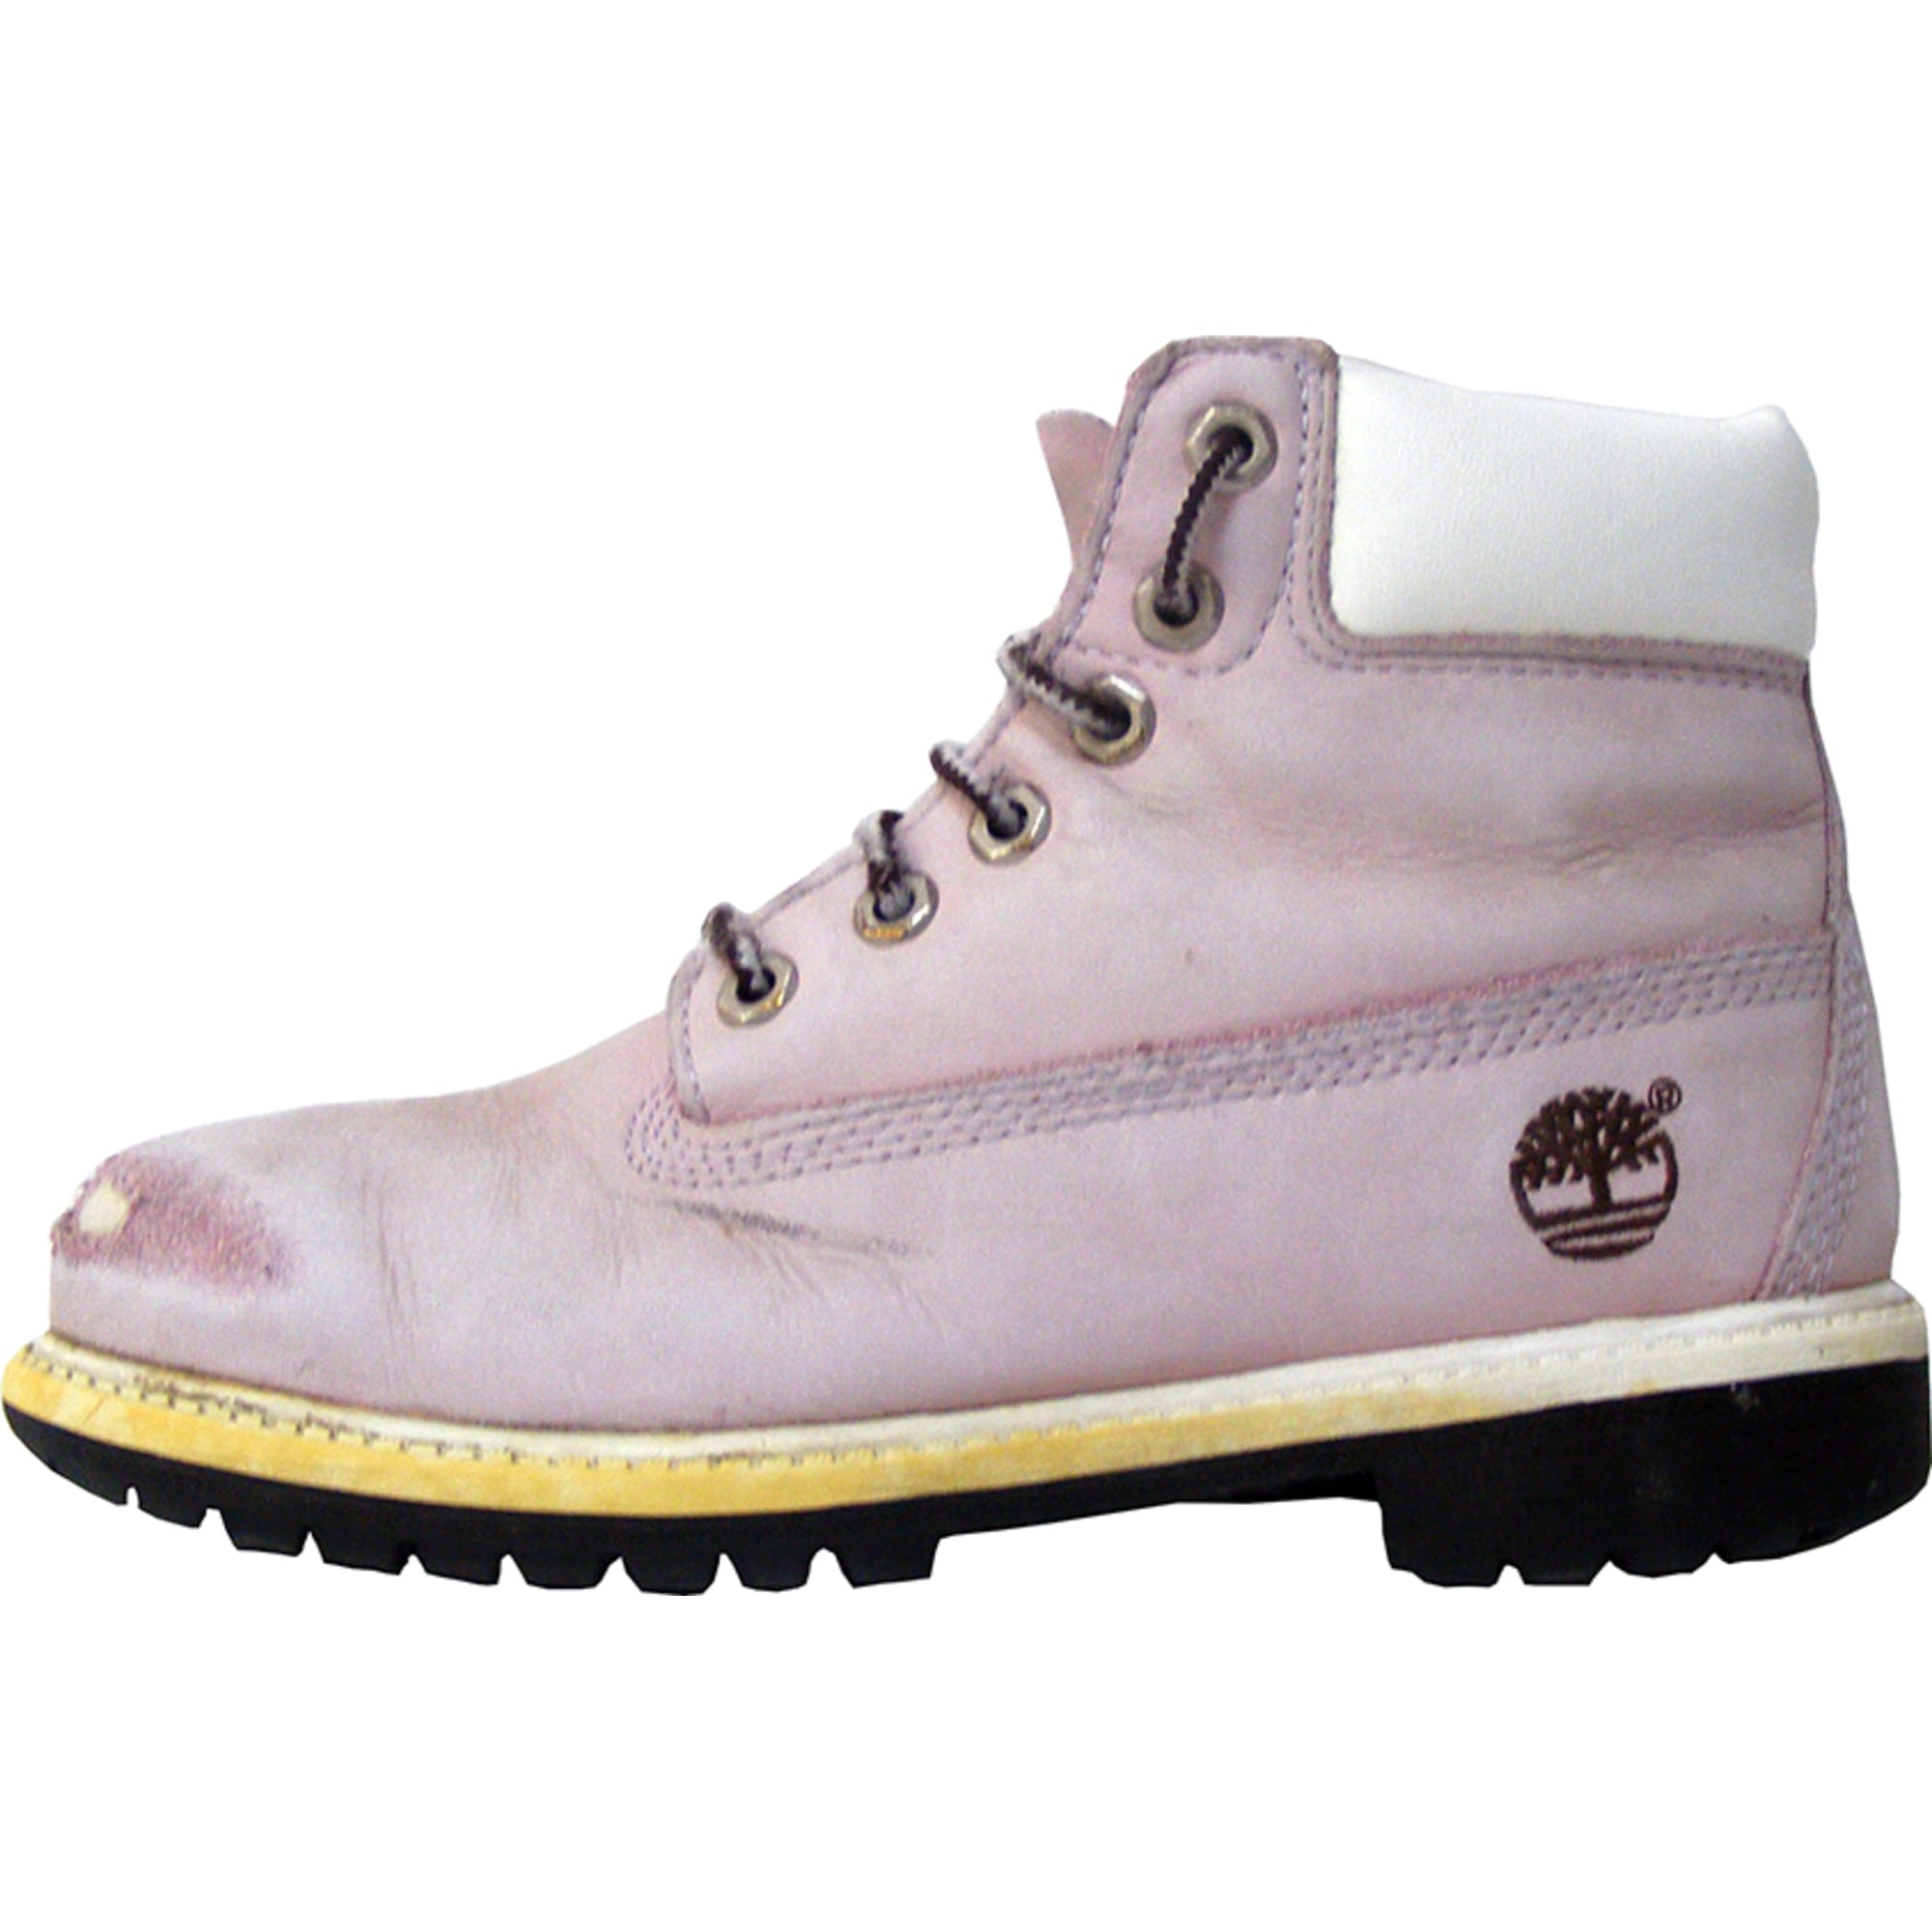 3b330d57e34 Chaussures à lacets TIMBERLAND 33 rose - 3850159